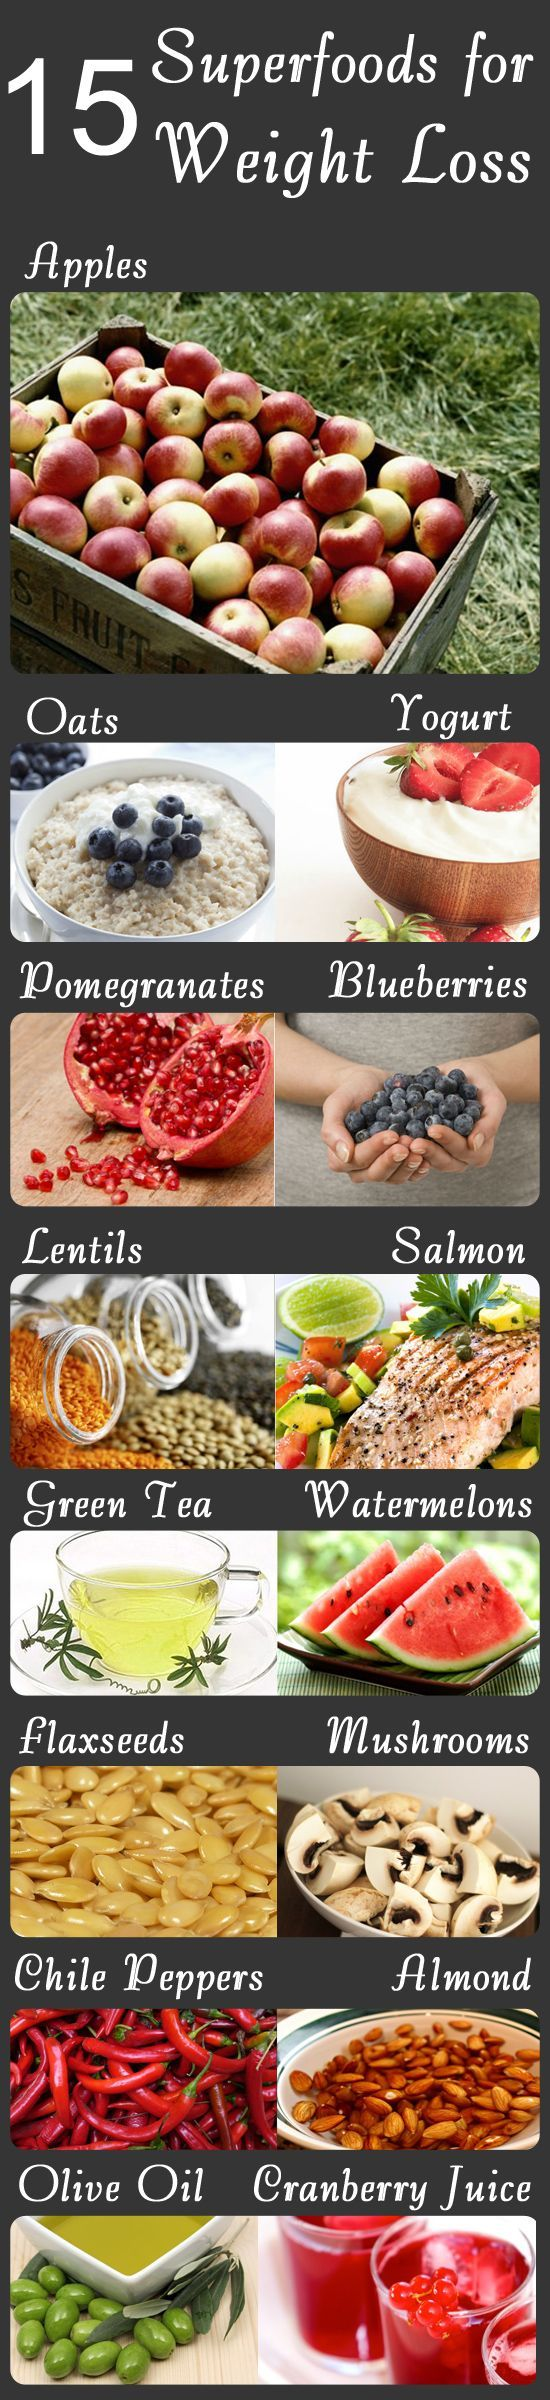 31 Superfoods For Weight Loss Backed By Science 31 Superfoods For Weight Loss Backed By Science new images